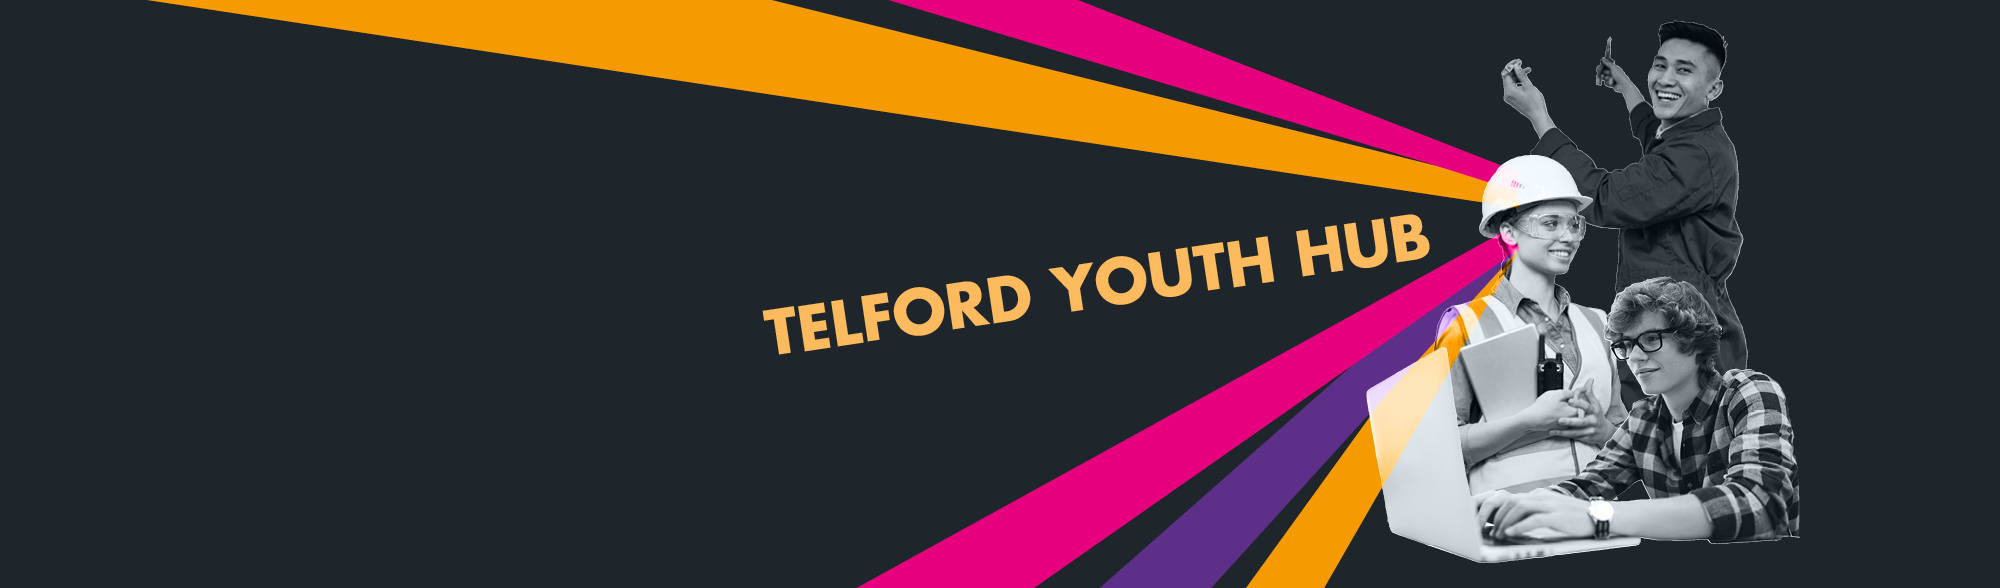 Graphic promoting the youth hub service